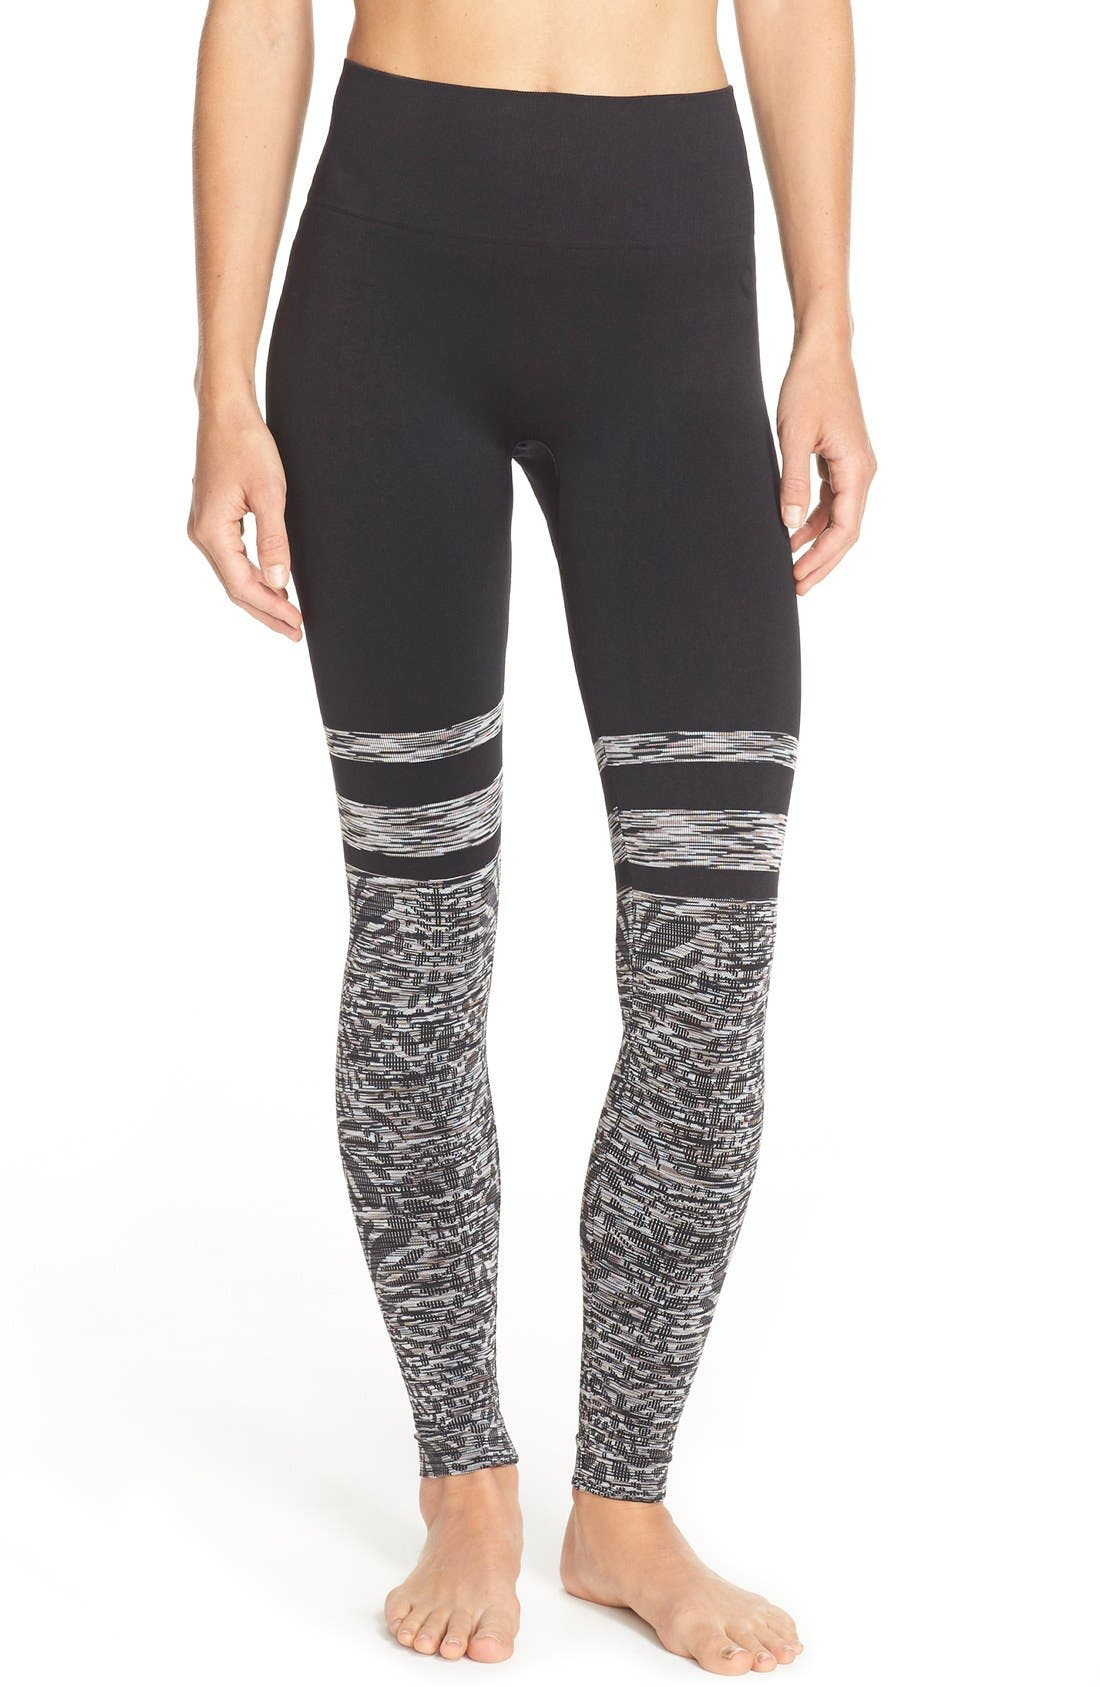 CLIMAWEAR 'Sitting Pretty' High Rise Leggings